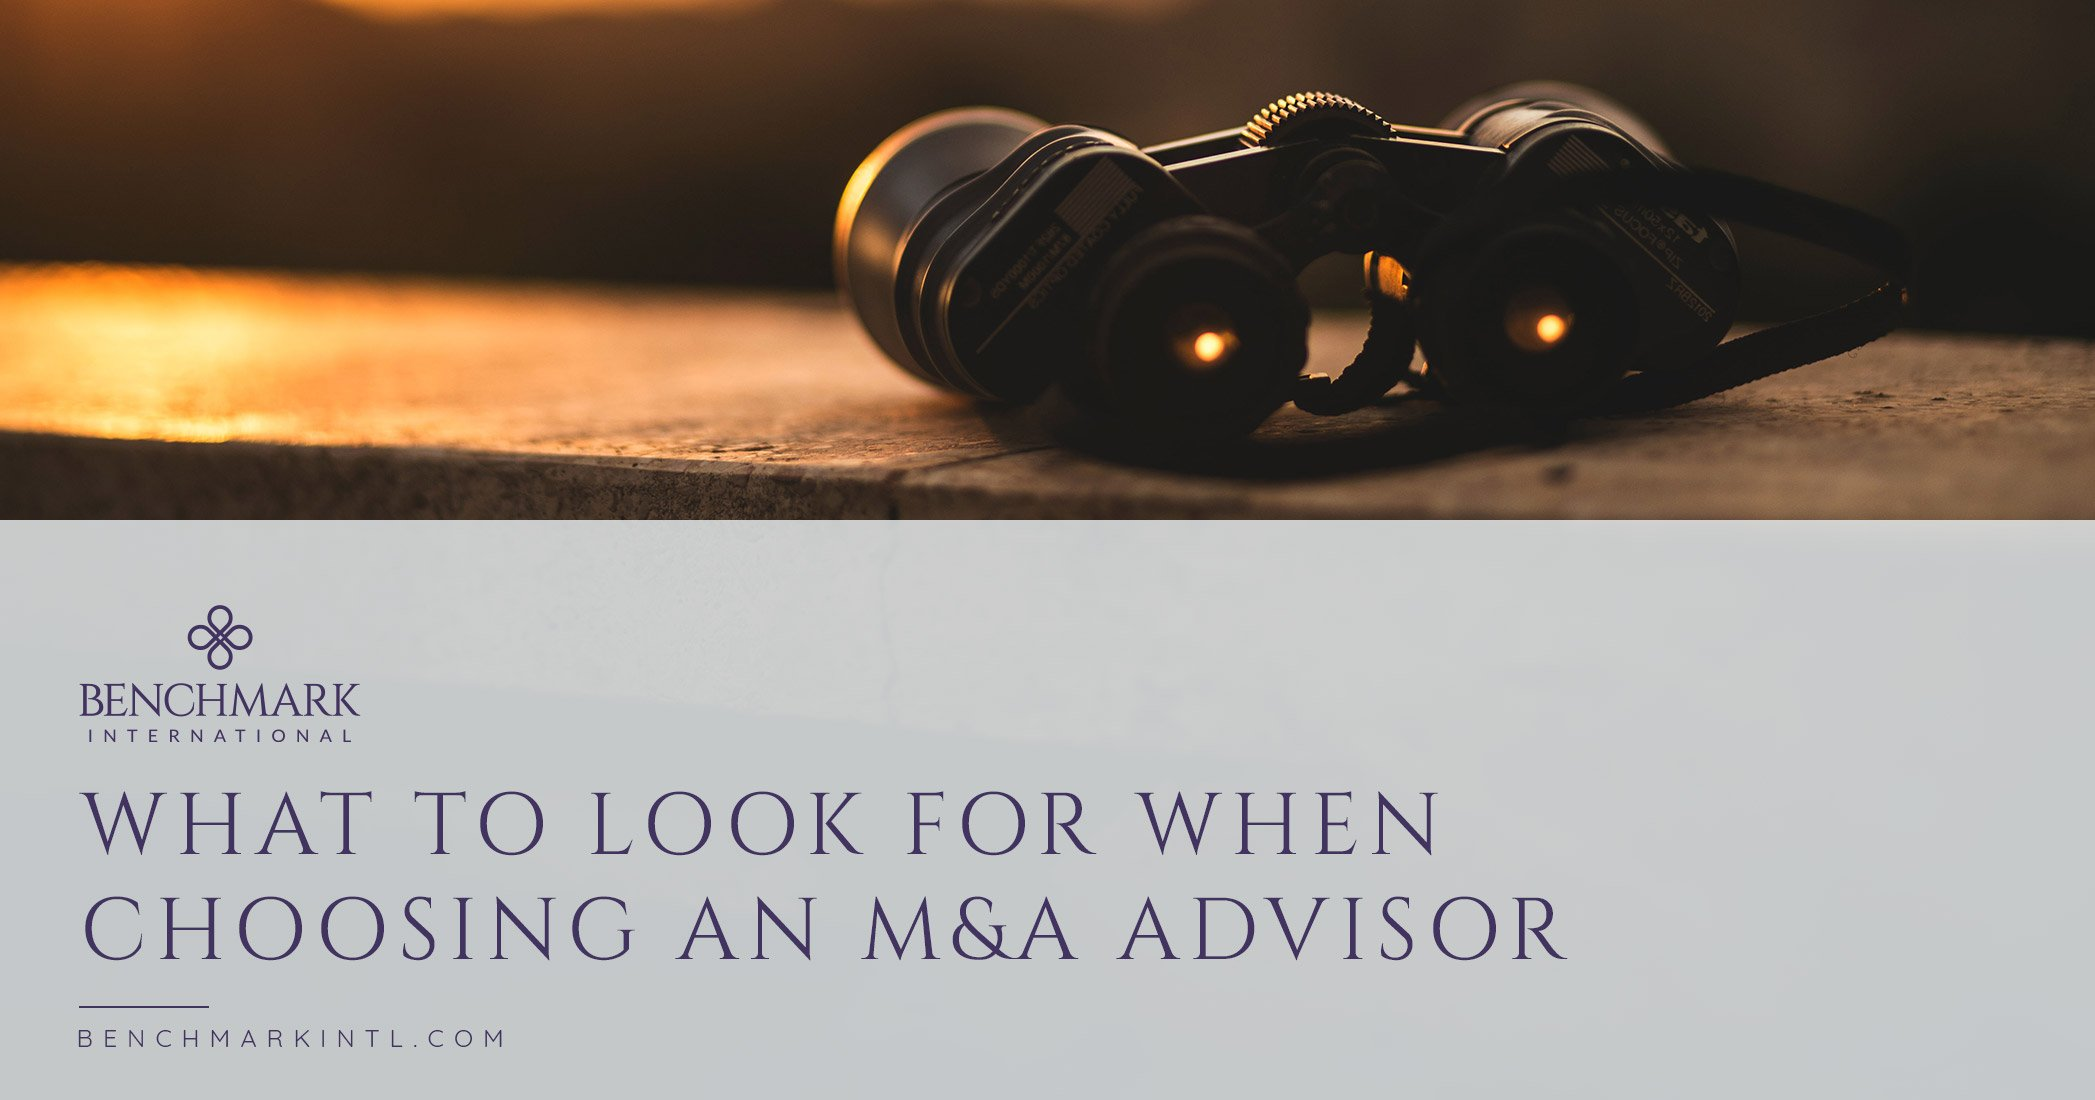 What To Look For When Choosing An M&A Advisor